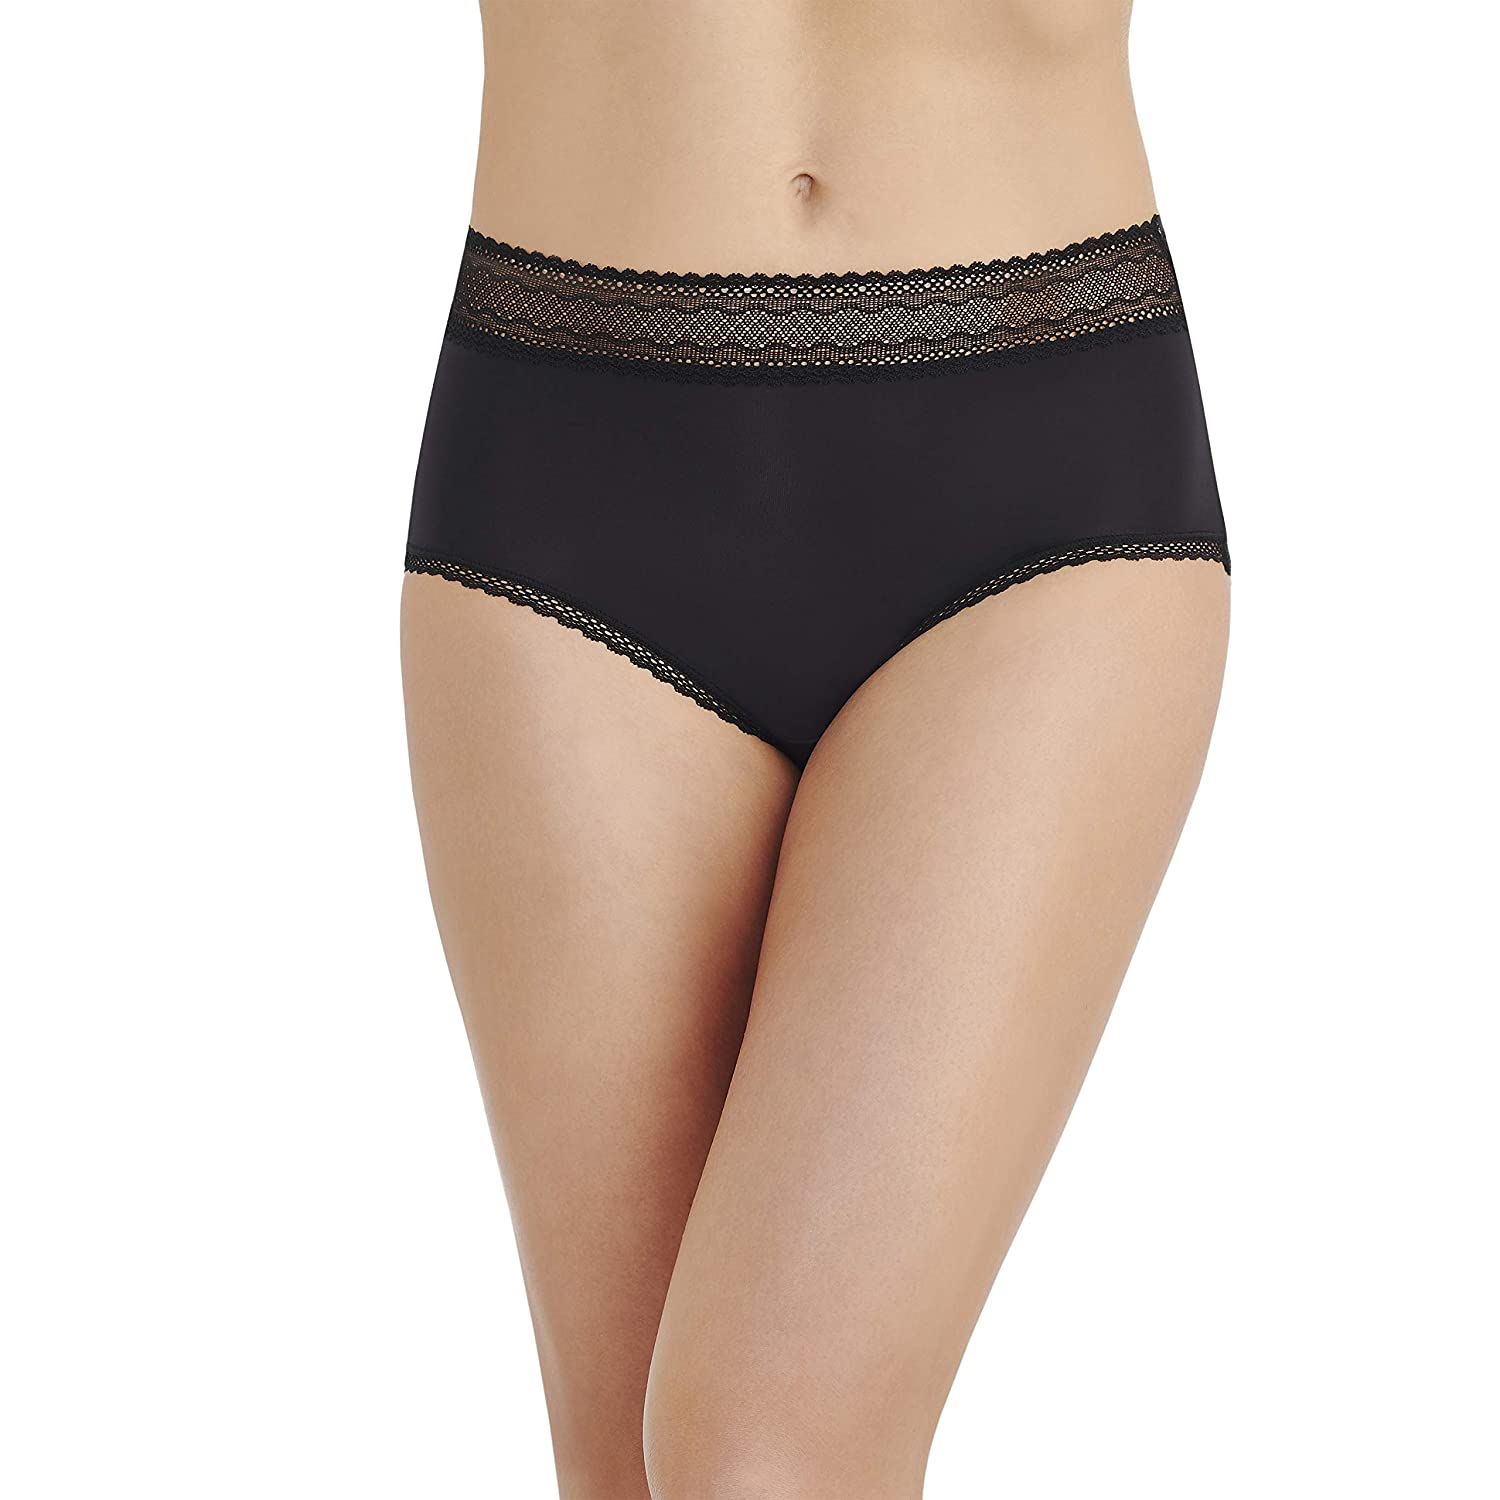 a9c74c20a Vanity Fair Women s Flattering Lace Brief Panty 13281 at Amazon Women s  Clothing store